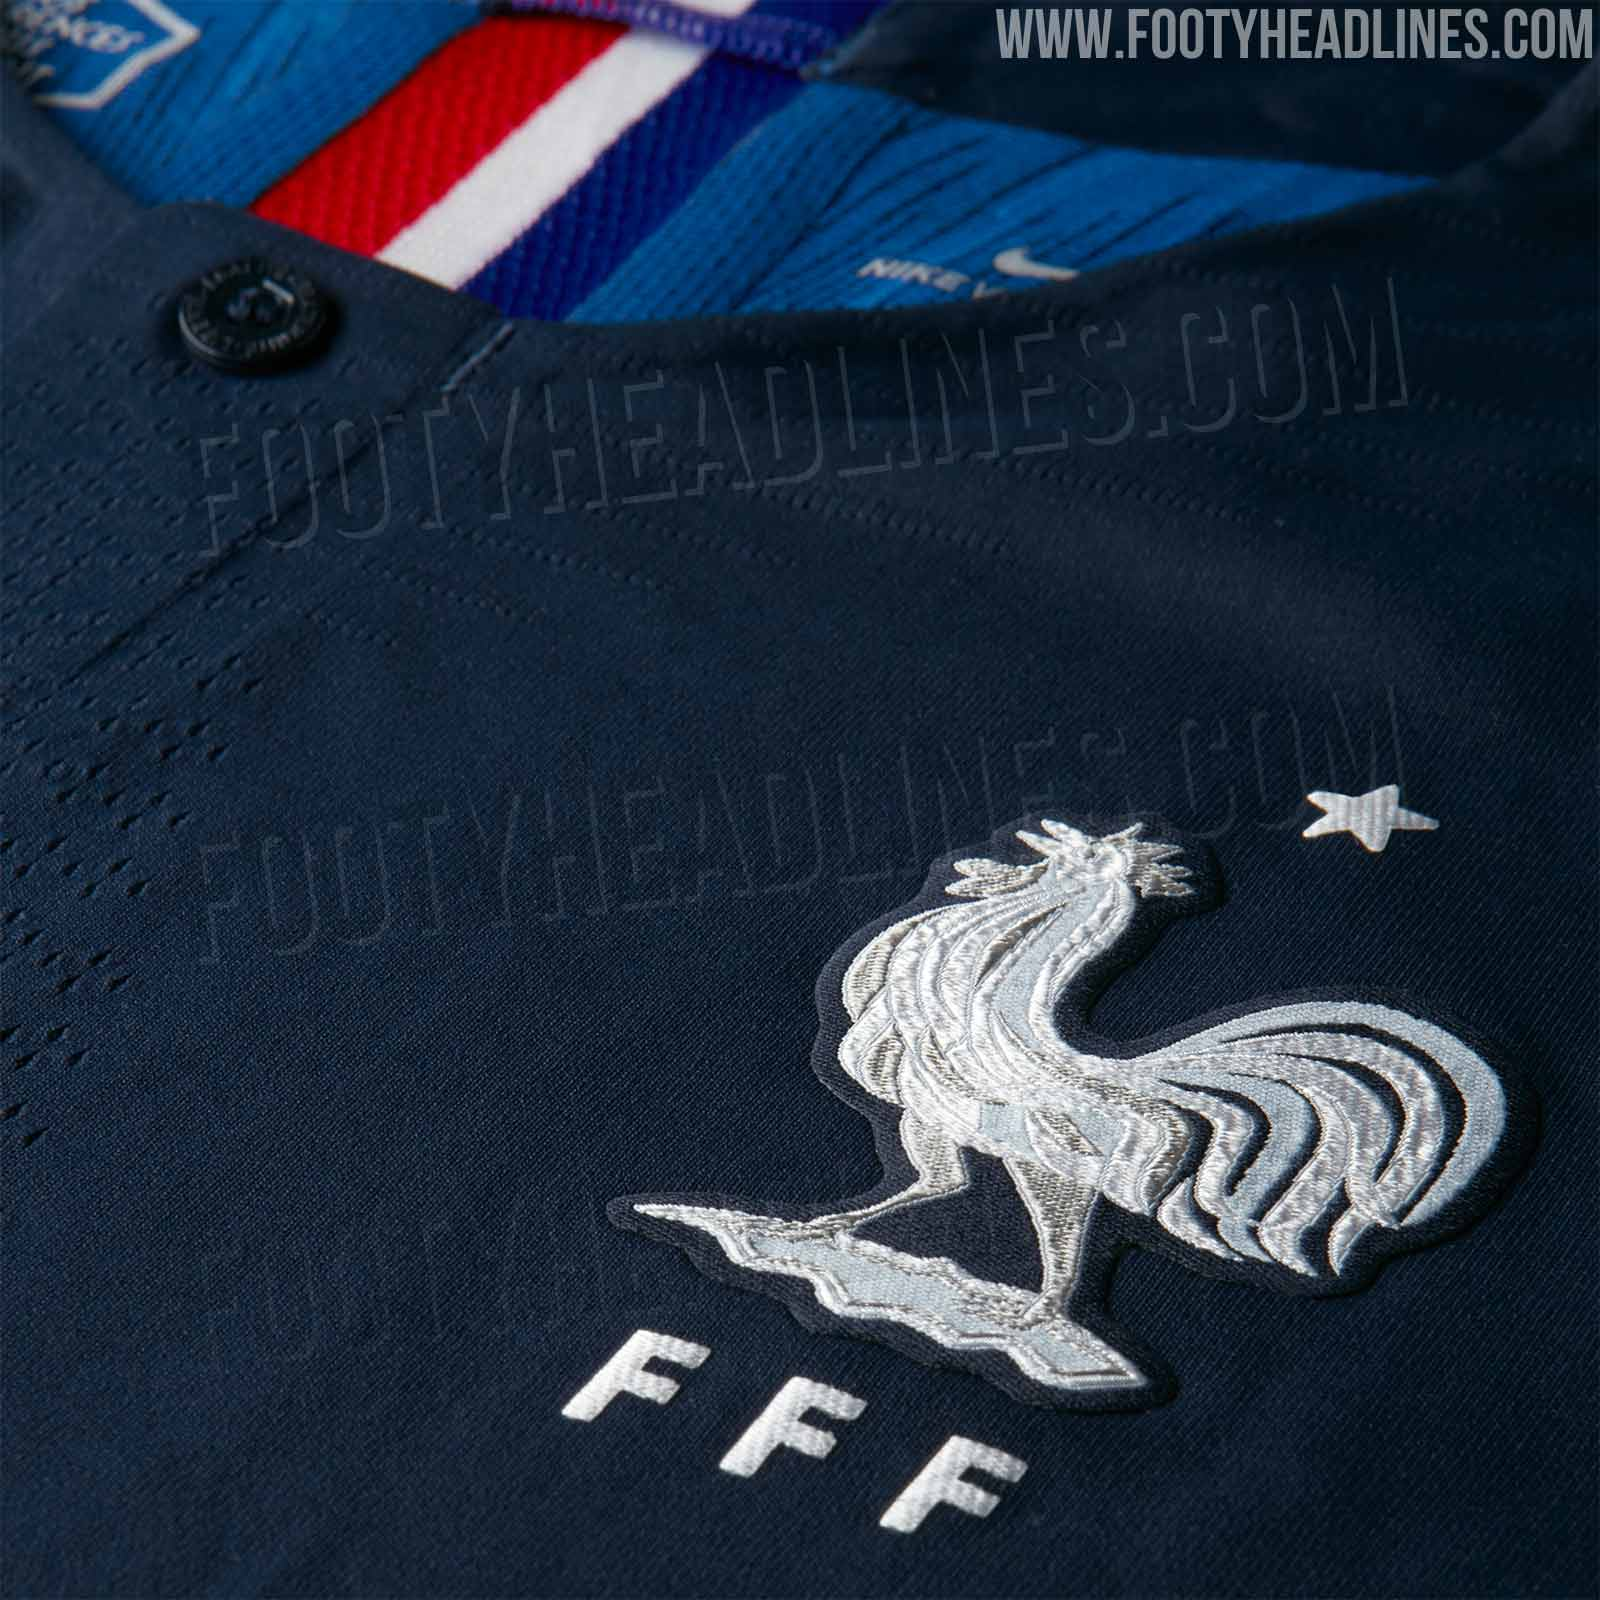 france-2018-world-cup-kit-4.jpg